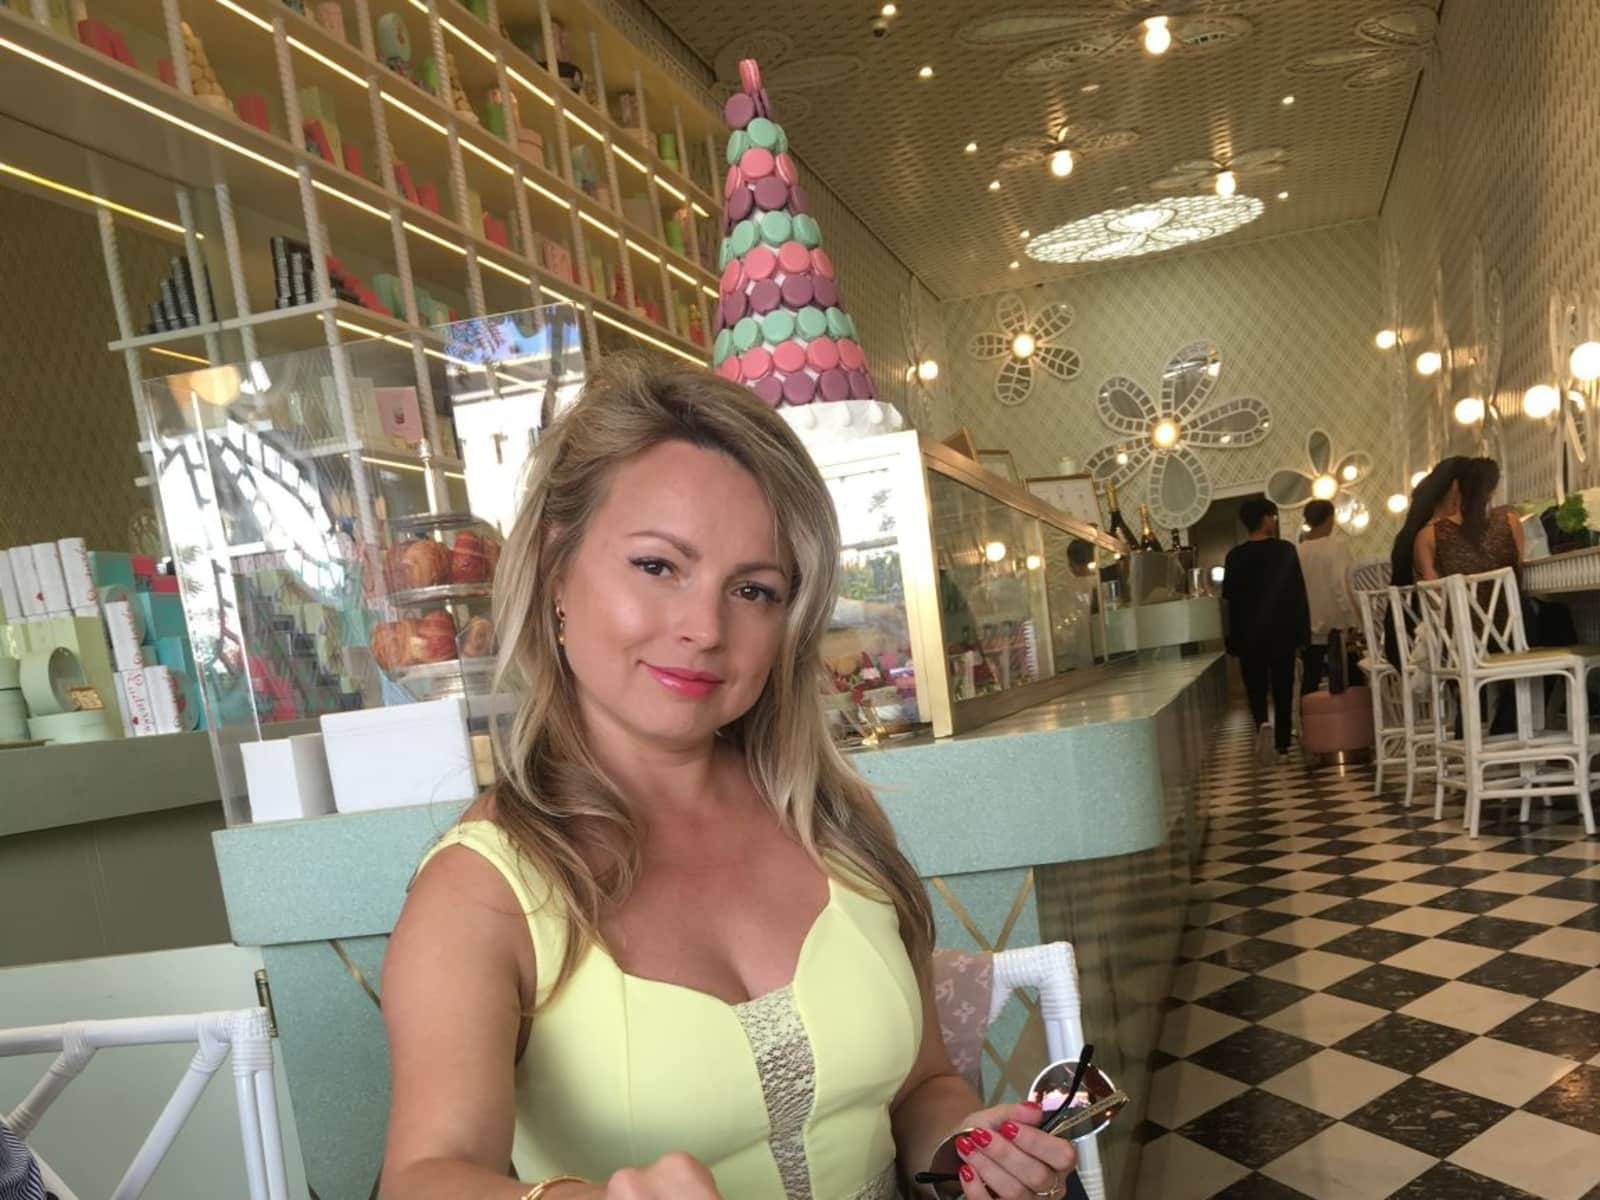 Ekaterina from Los Angeles, California, United States